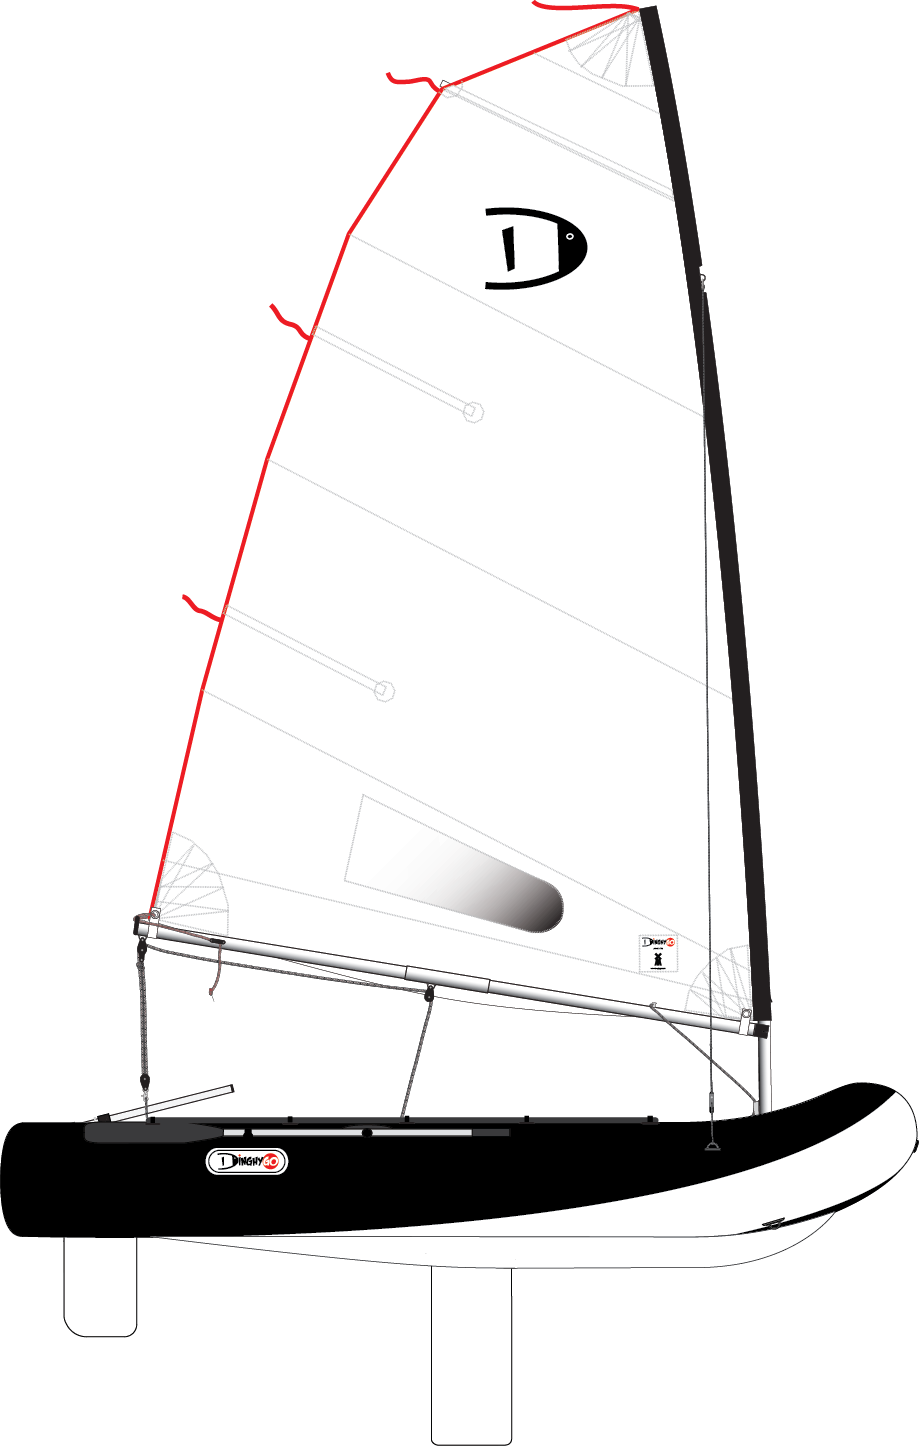 DinghyGo_Orca_325_side_view